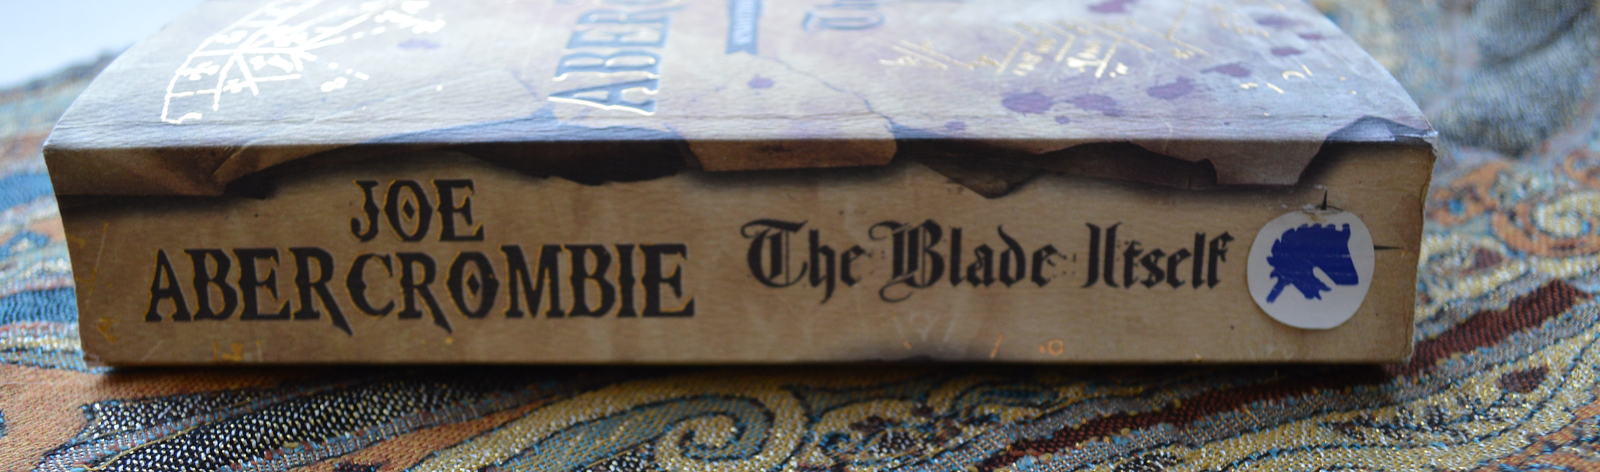 Joe Abercrombie, The Blade Itself, fantasy, review, book, fiction, literature, book cover, paperback, photo, photograph